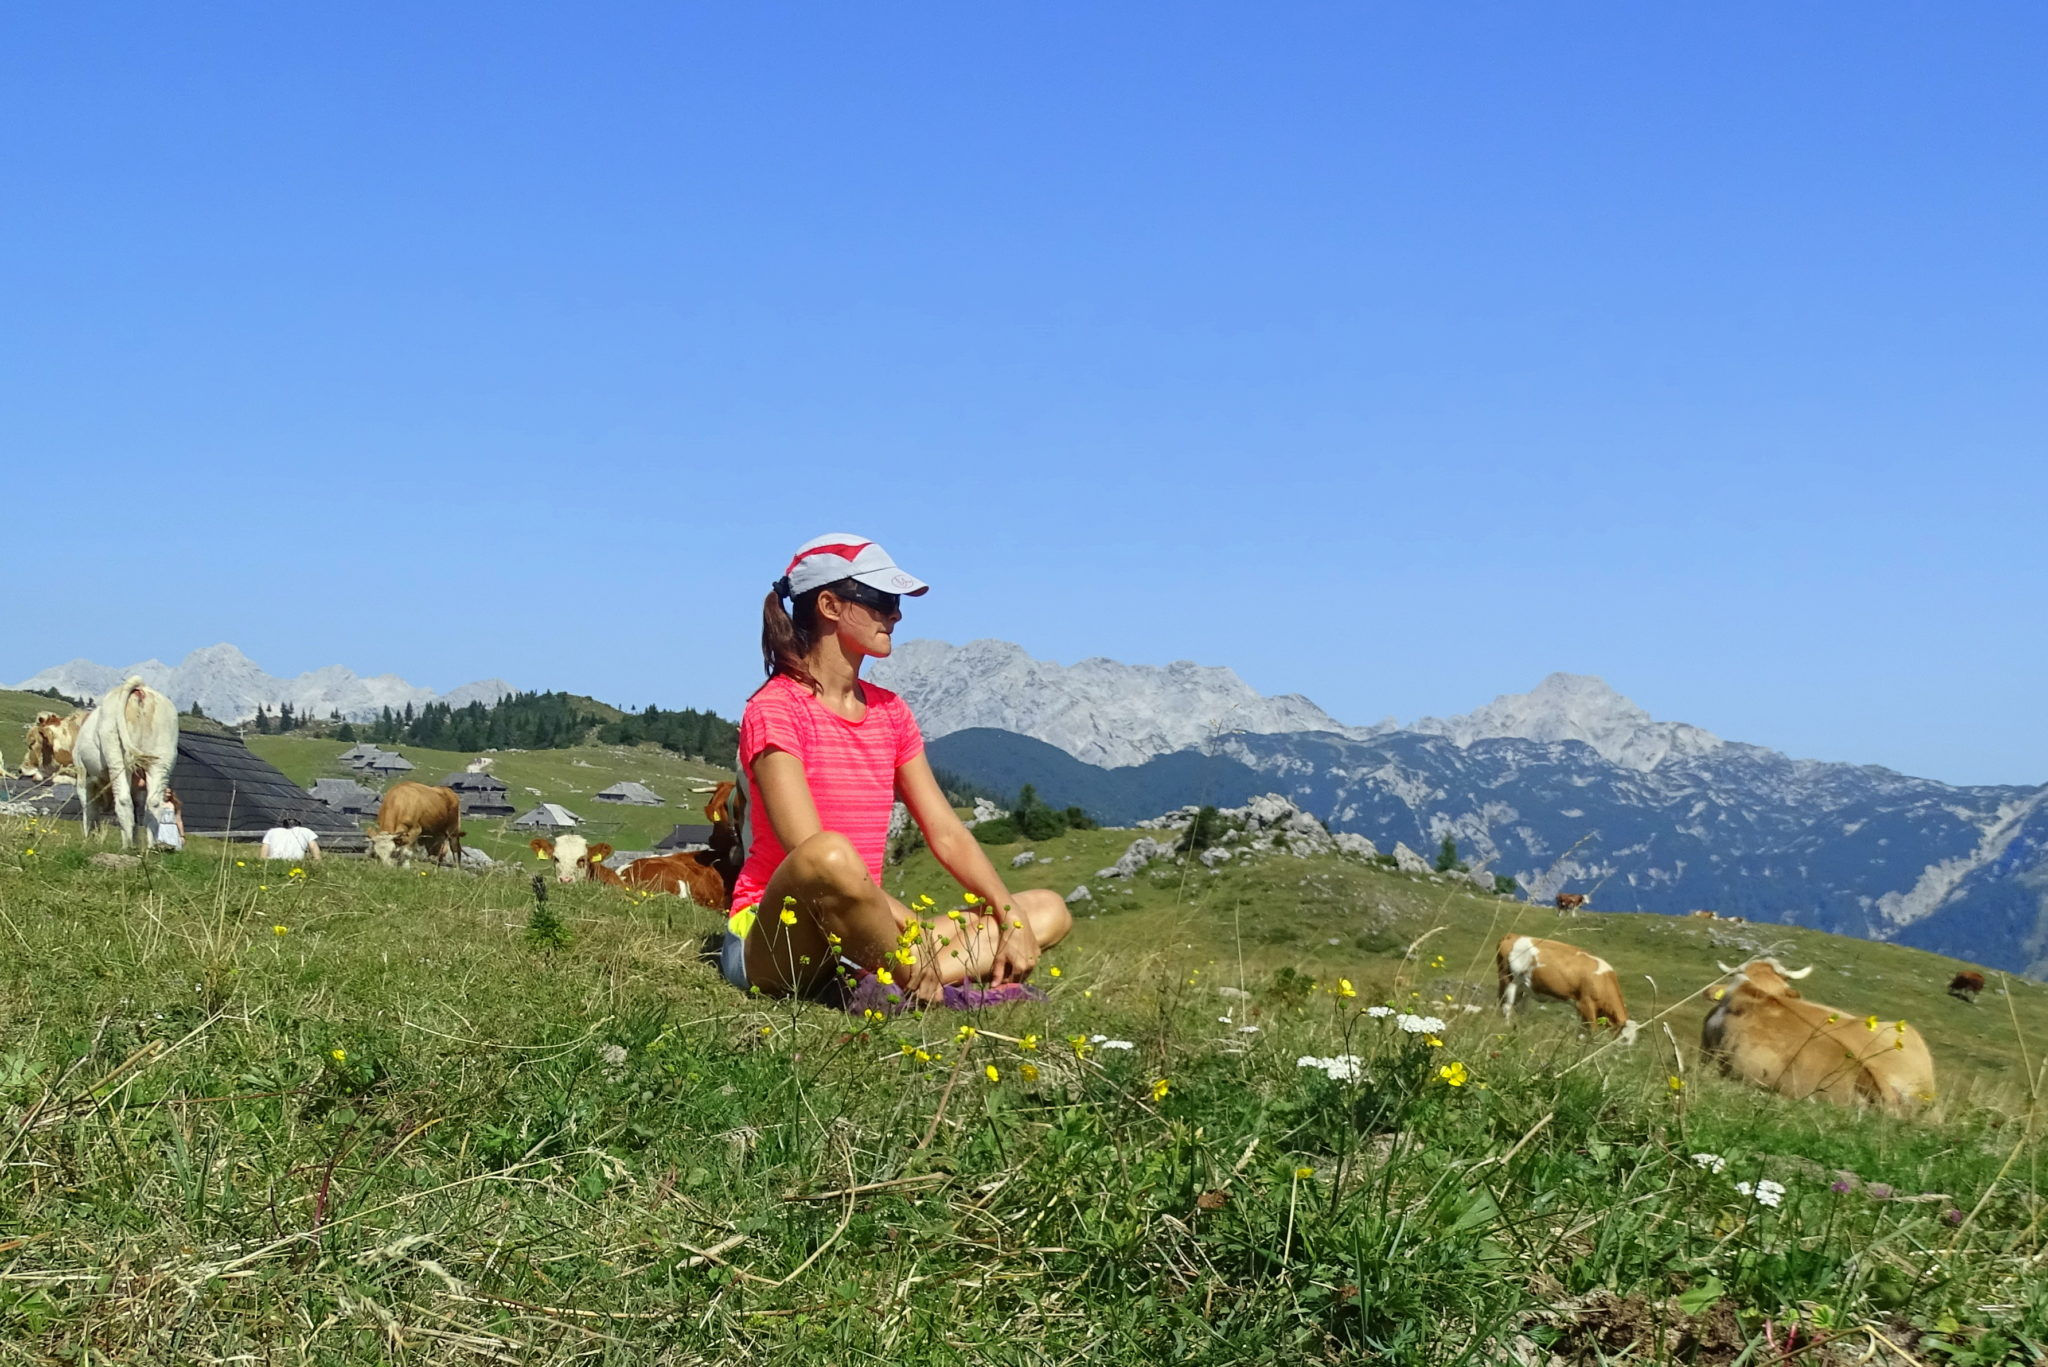 A female hiker enjoying Velika Planina, Central Slovenia